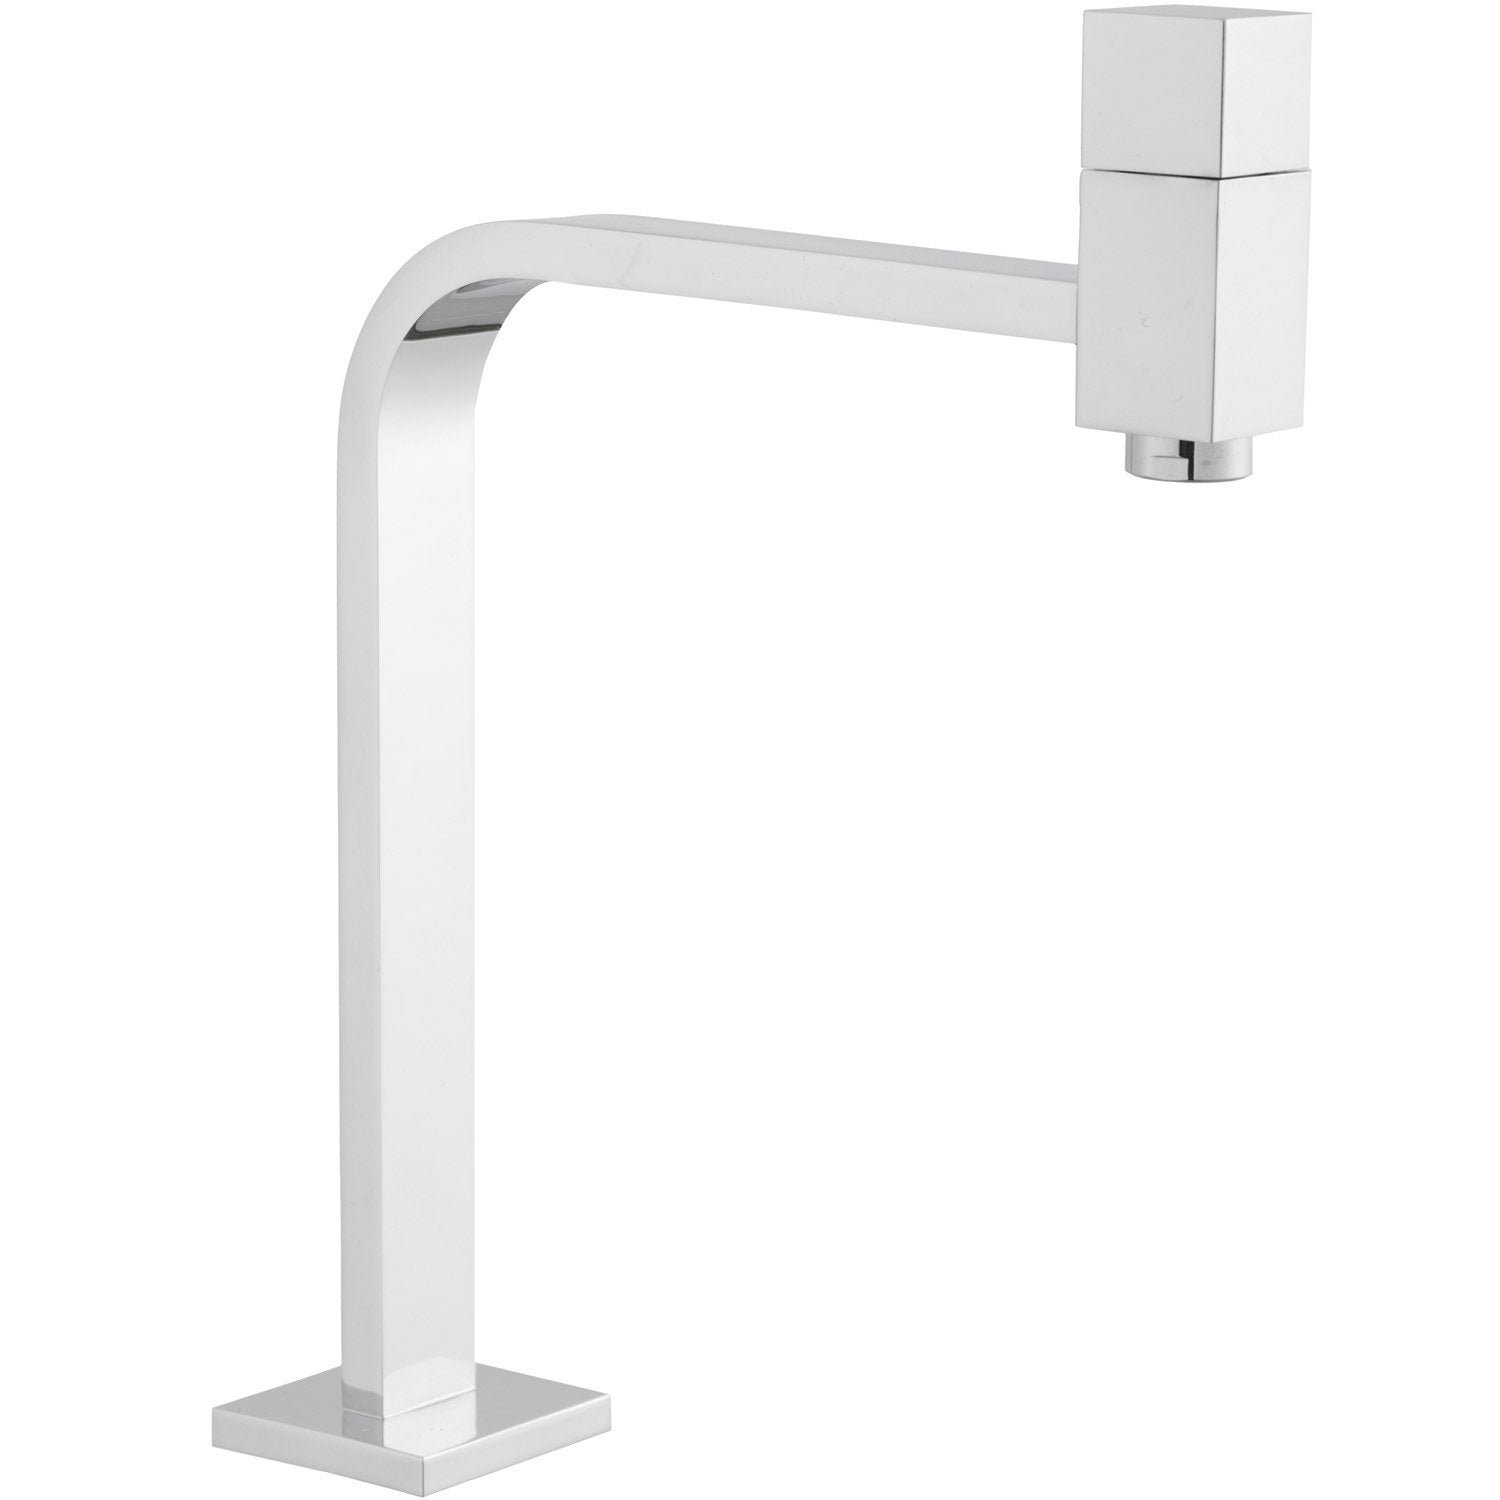 Fasciné Robinet Lave Main Grohe